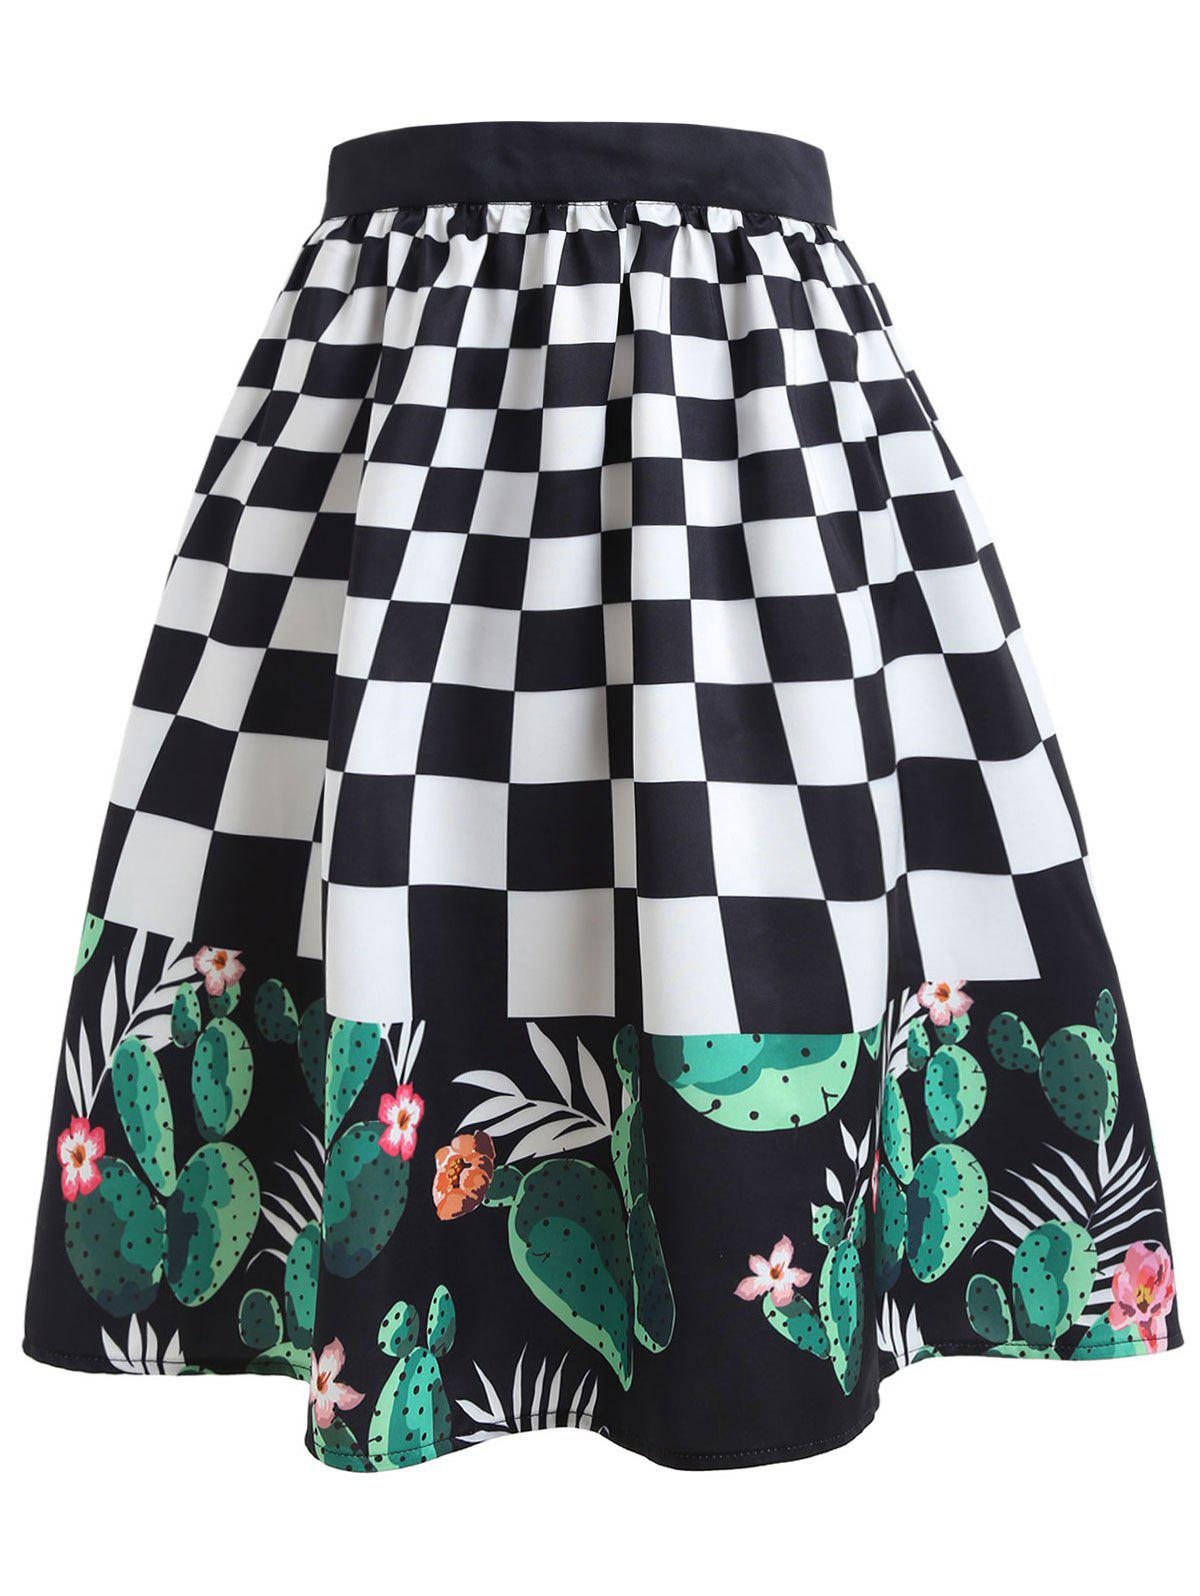 Shops Checked Cactus Print Midi Skirt